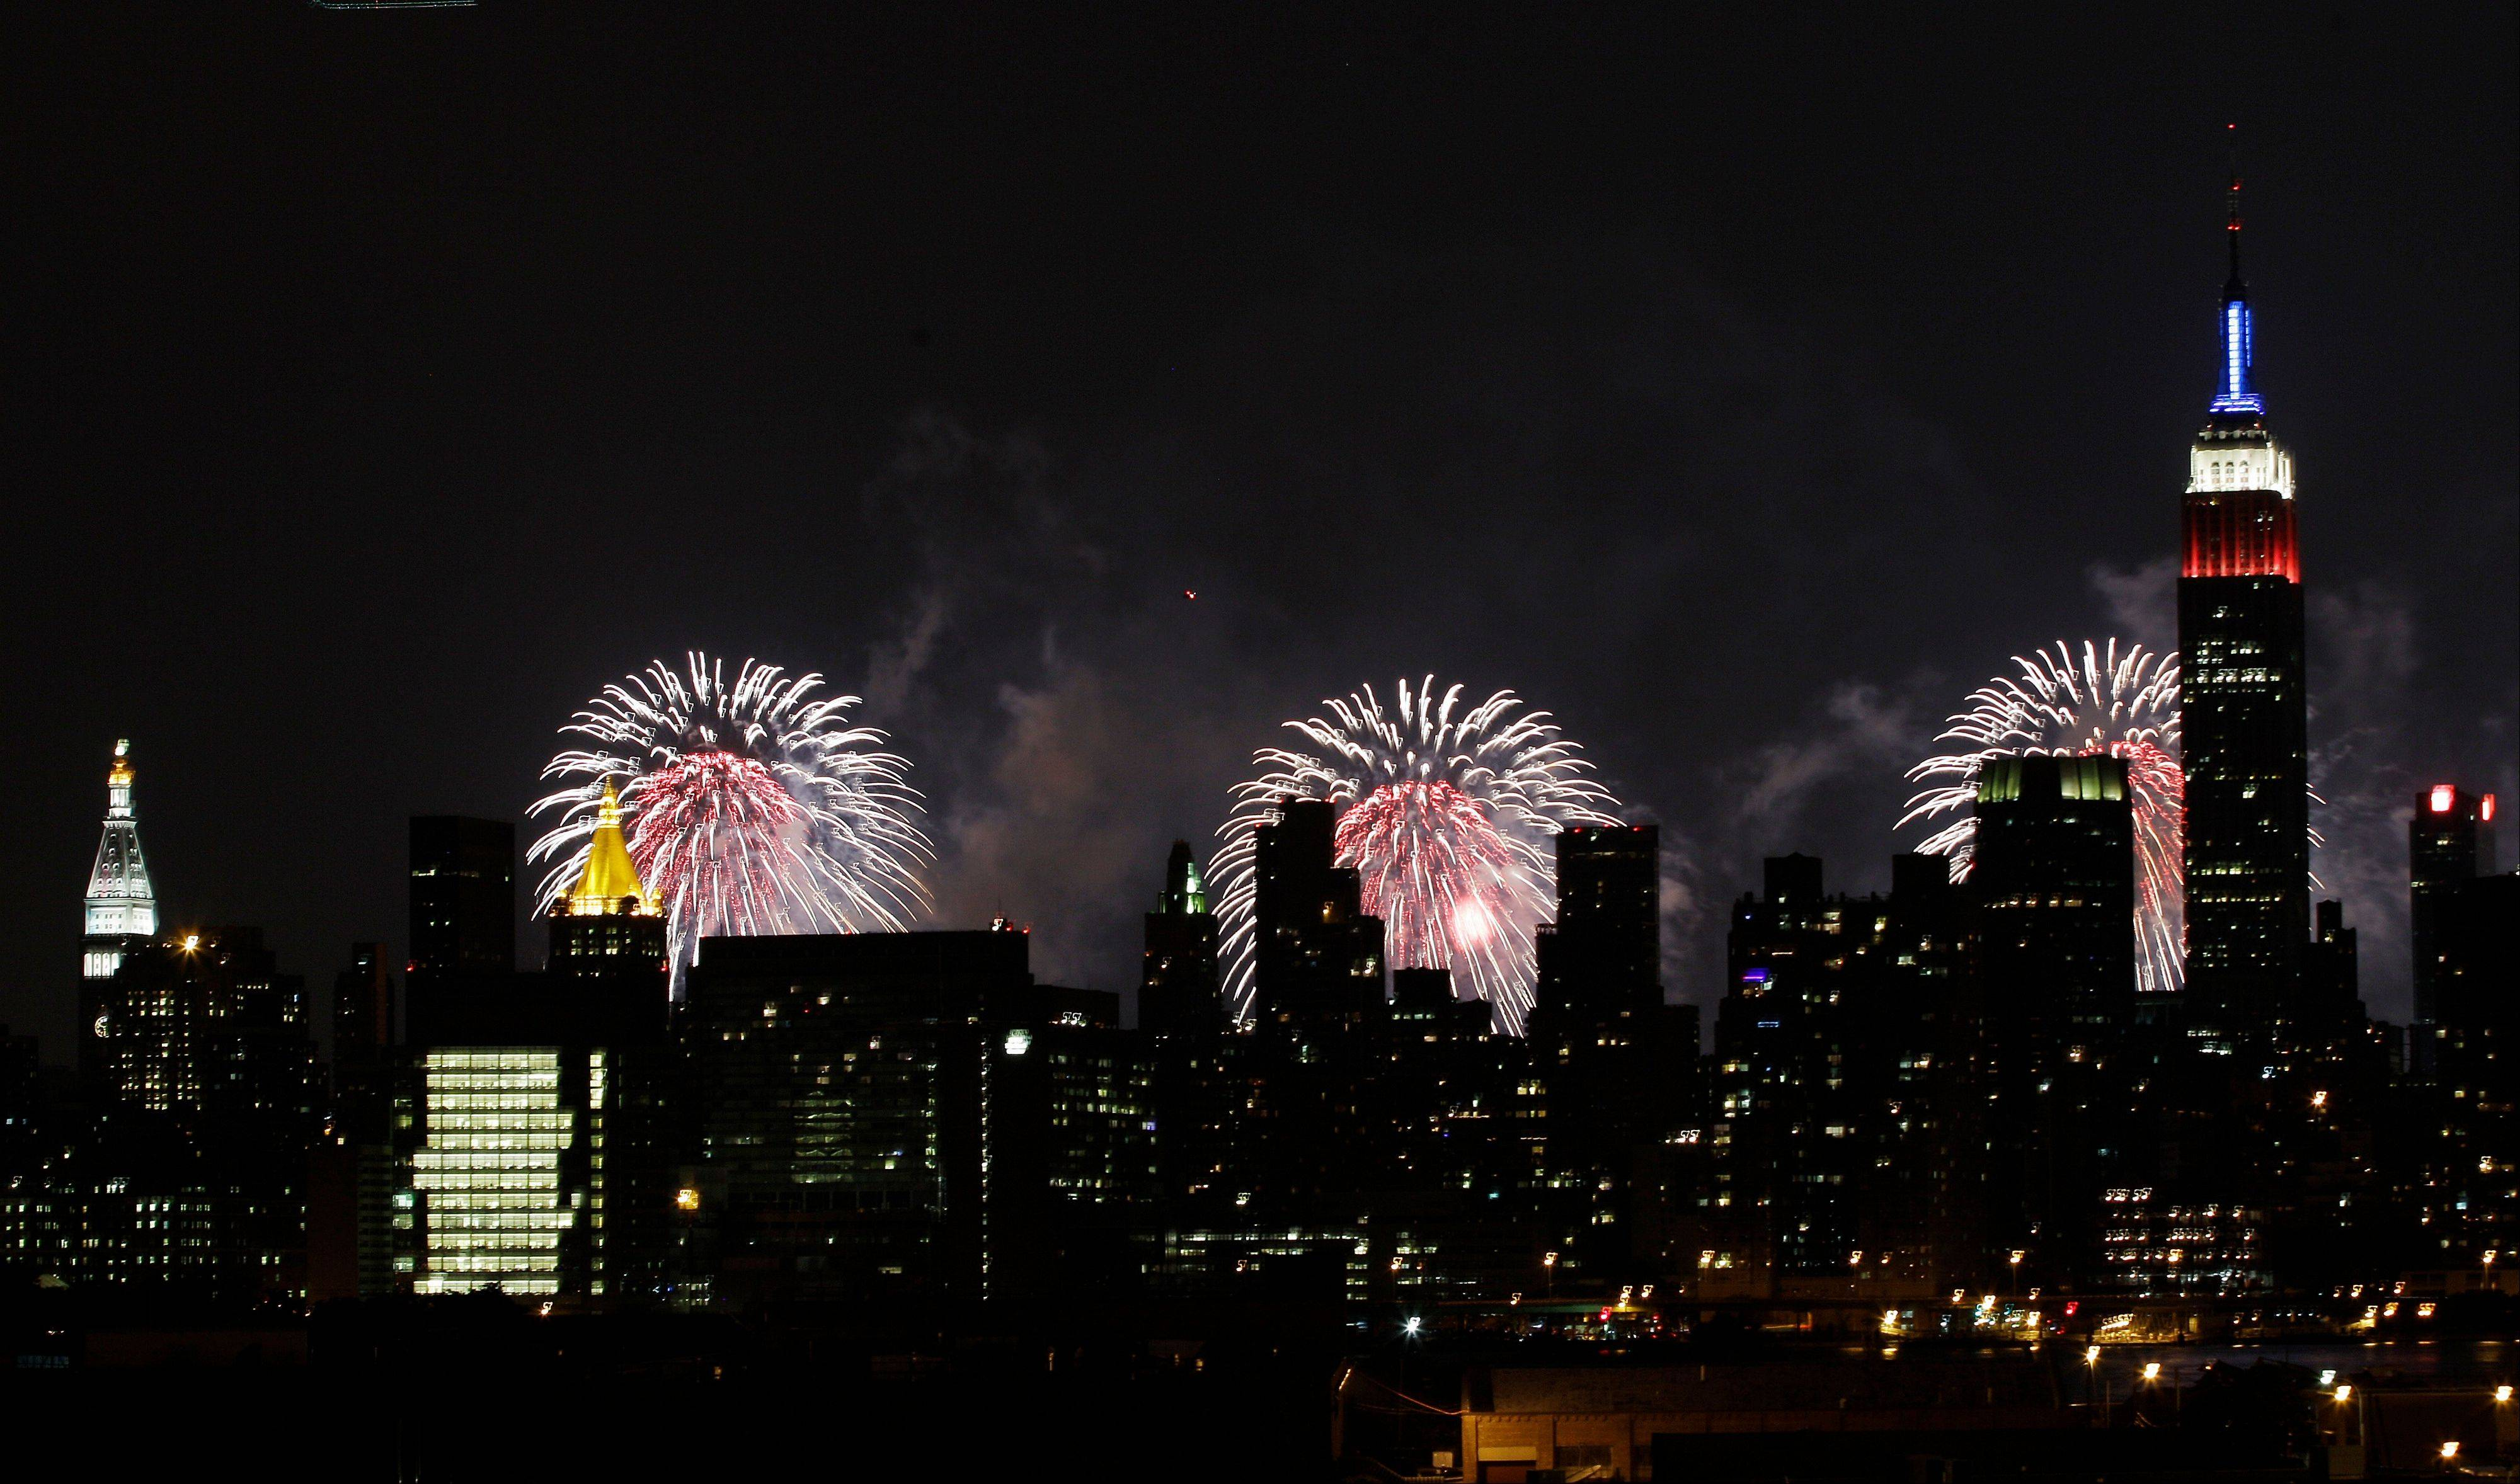 The Empire State Building, illuminated with red, white and blue lights, is seen from the Queens borough of New York, backlit by fireworks over the Hudson River, during the Macy's Fourth of July fireworks show Wednesday, July 4, 2012, in New York.